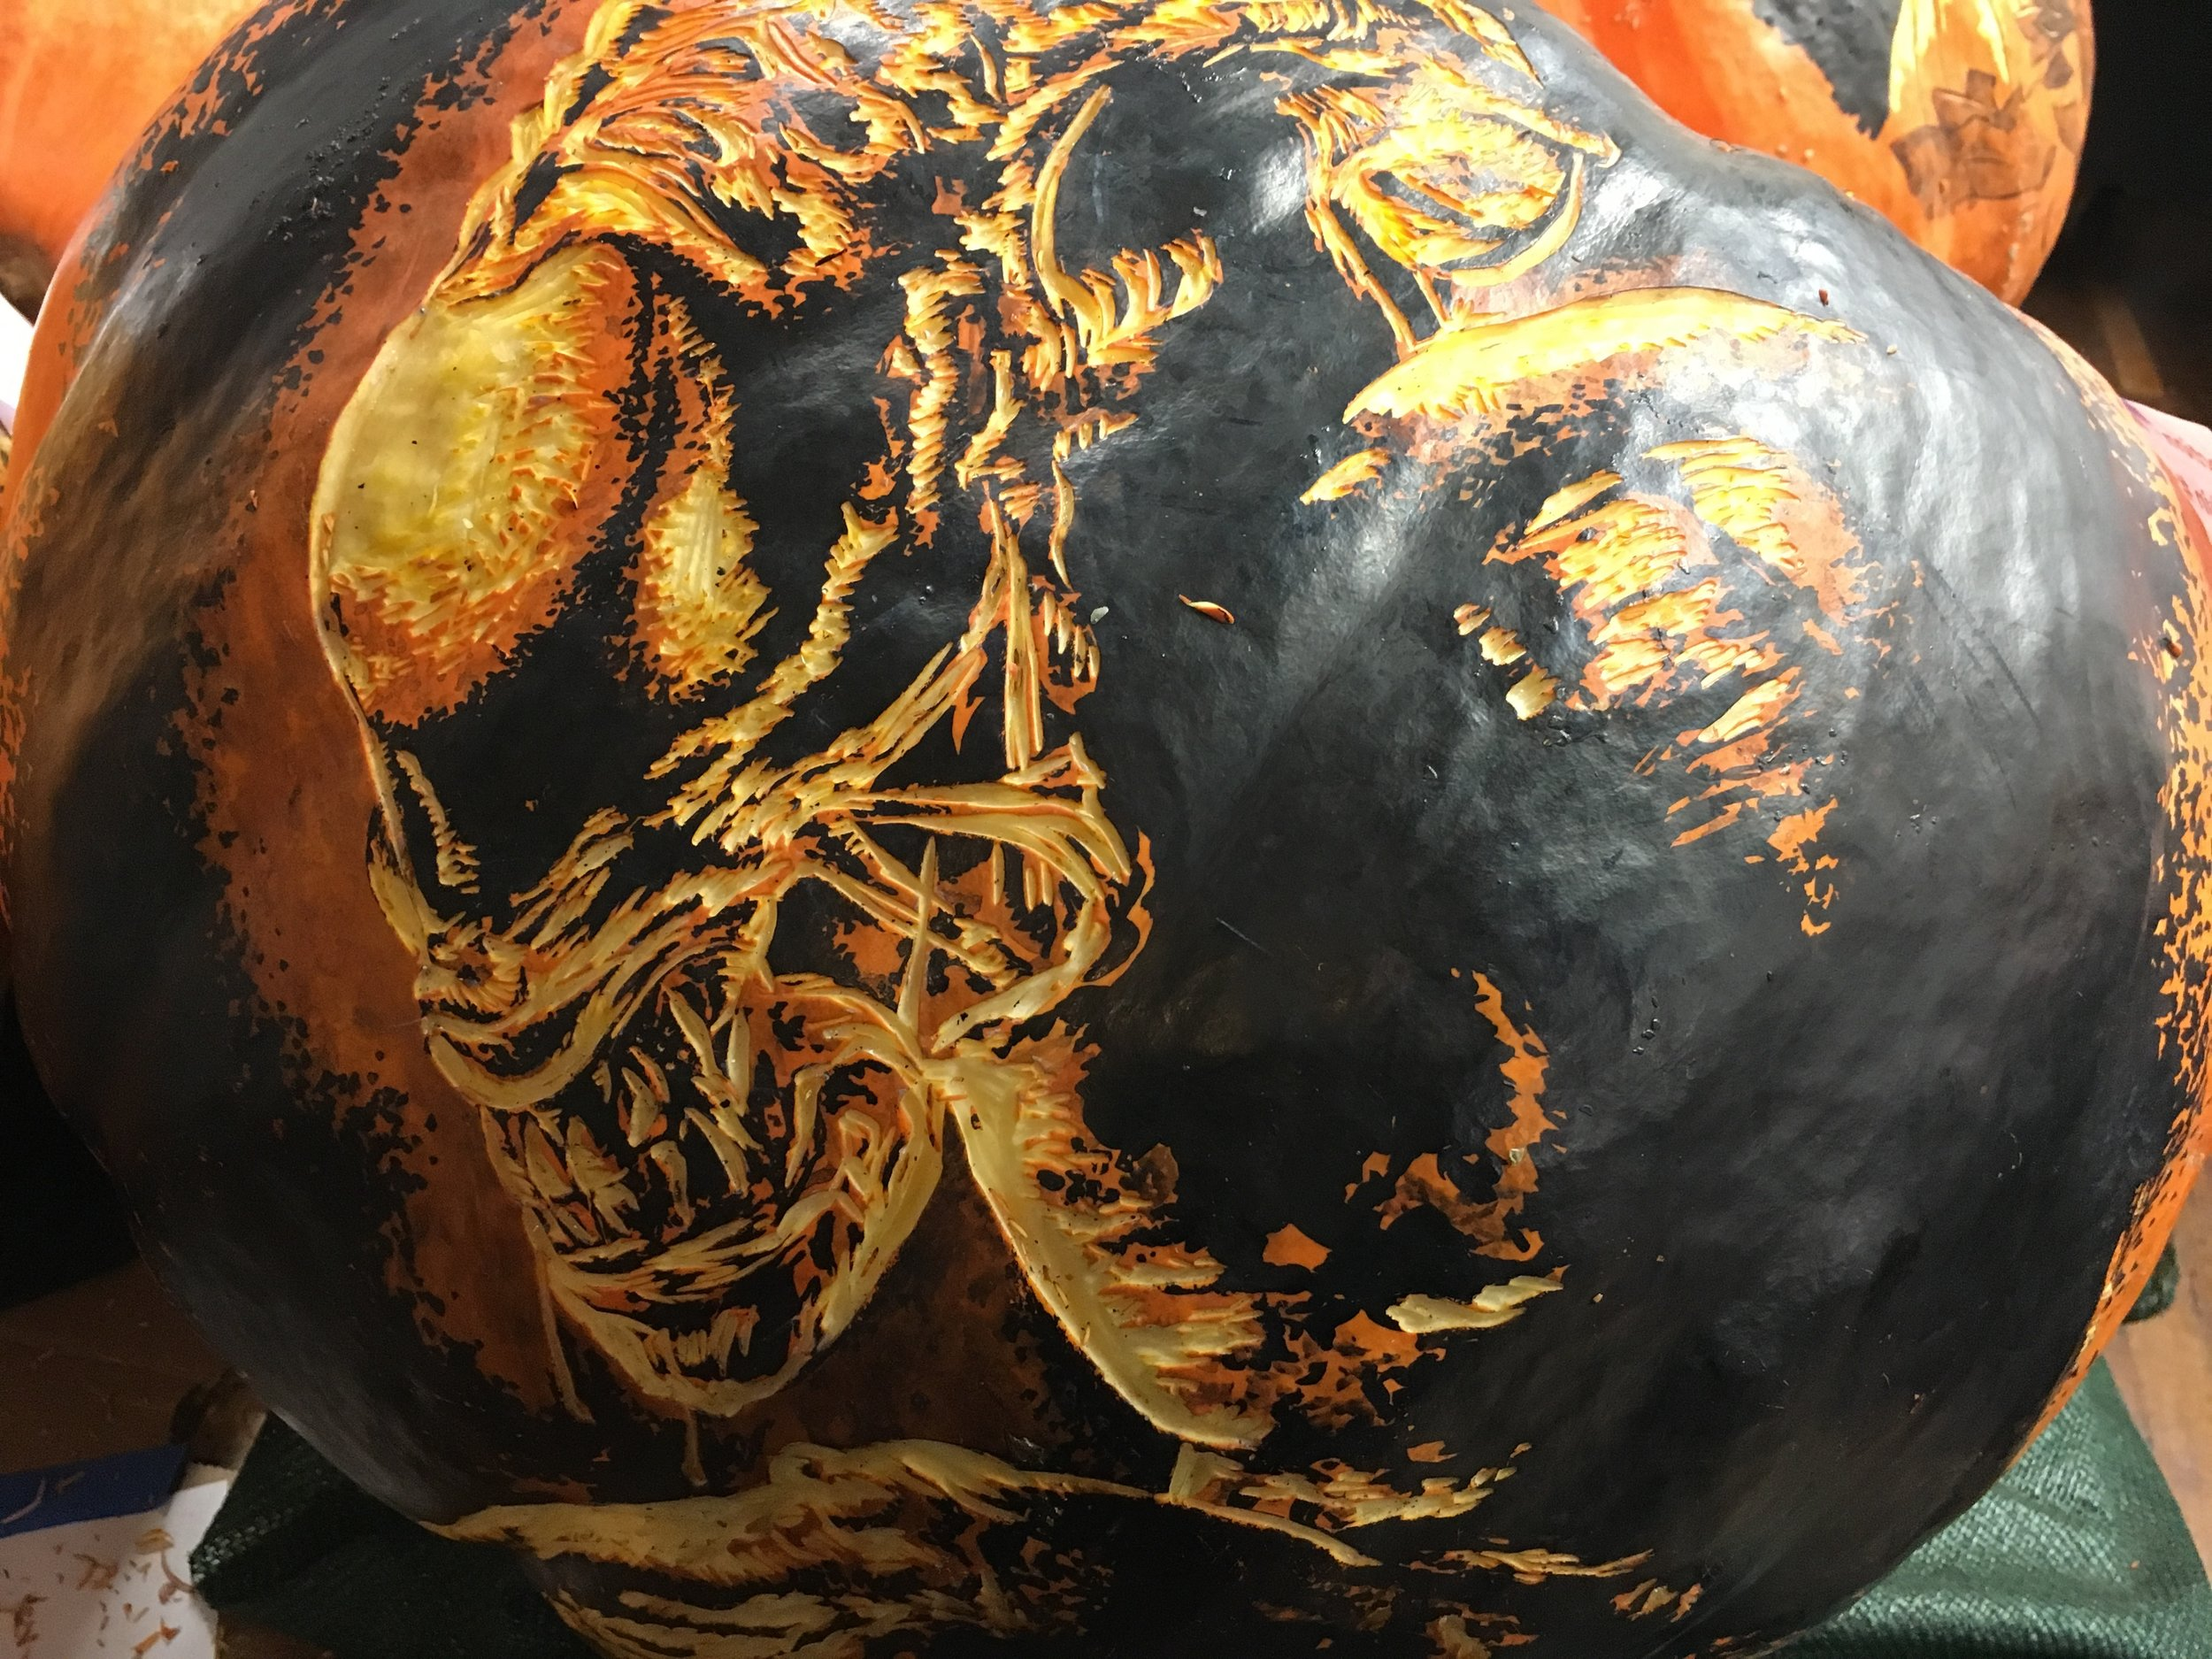 Xenomorph from Alien - RISE of the Jack O'Lanterns